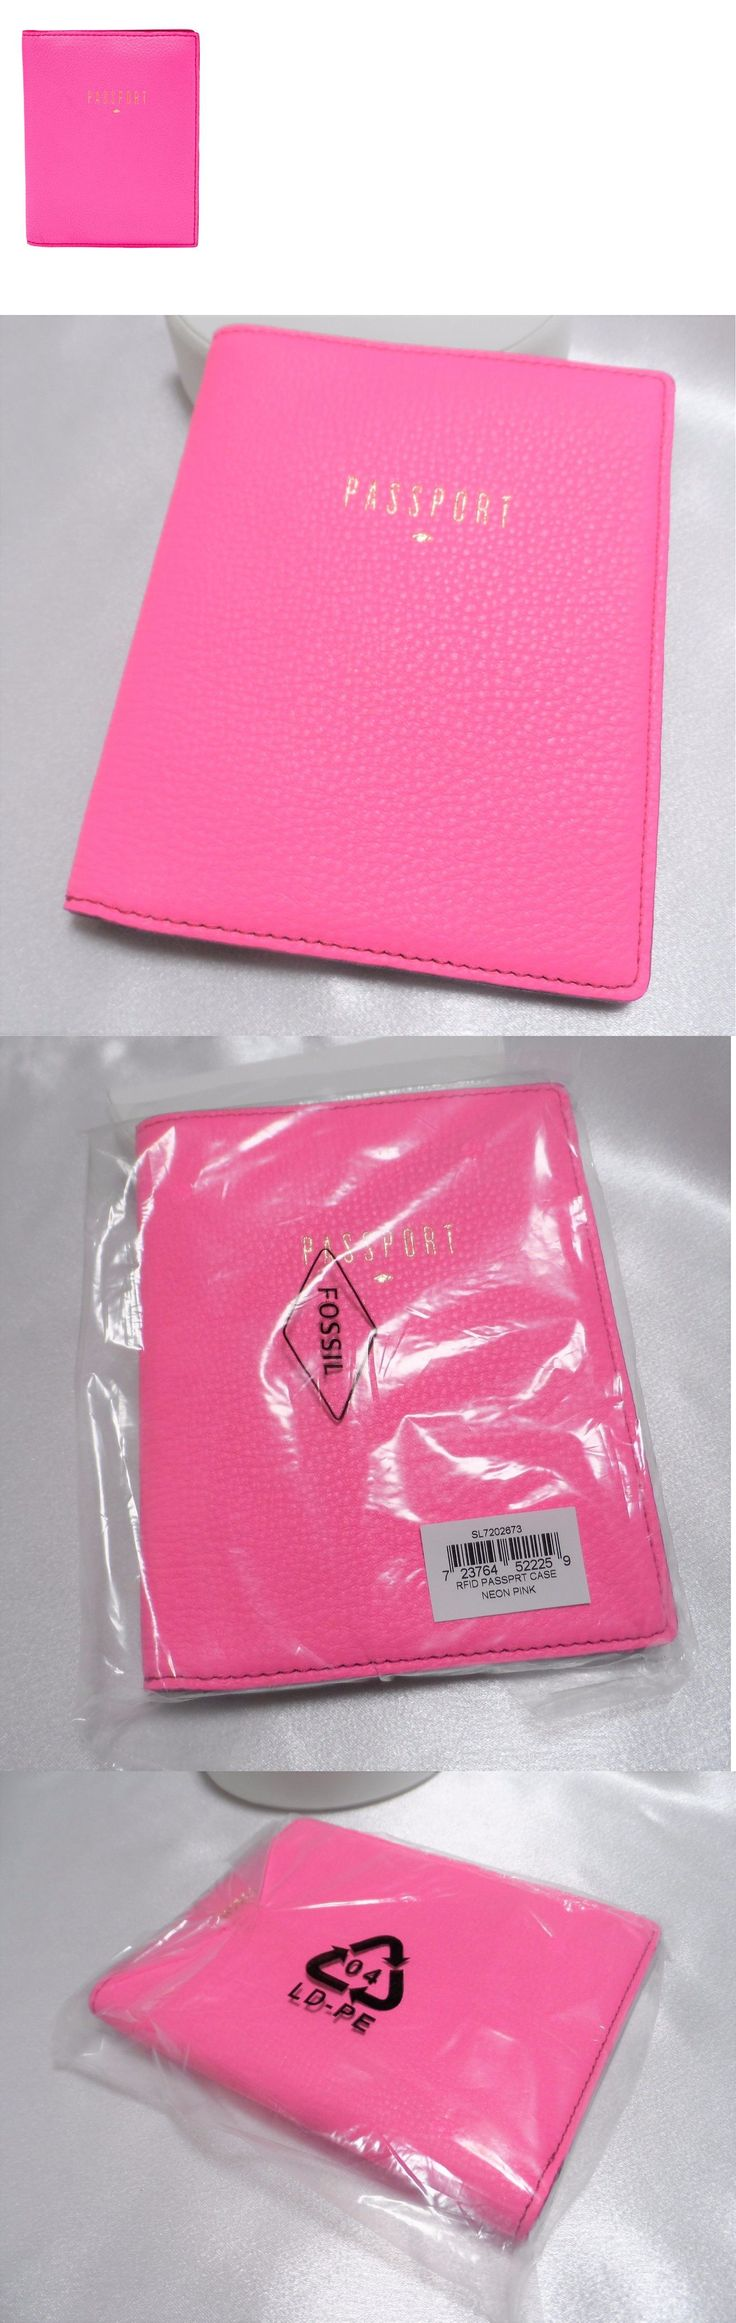 ID and Document Holders 169279: Fossil Rfid Neon Pink Travel Passport Document Id Wallet Case Nwt No Box -> BUY IT NOW ONLY: $47.99 on eBay!